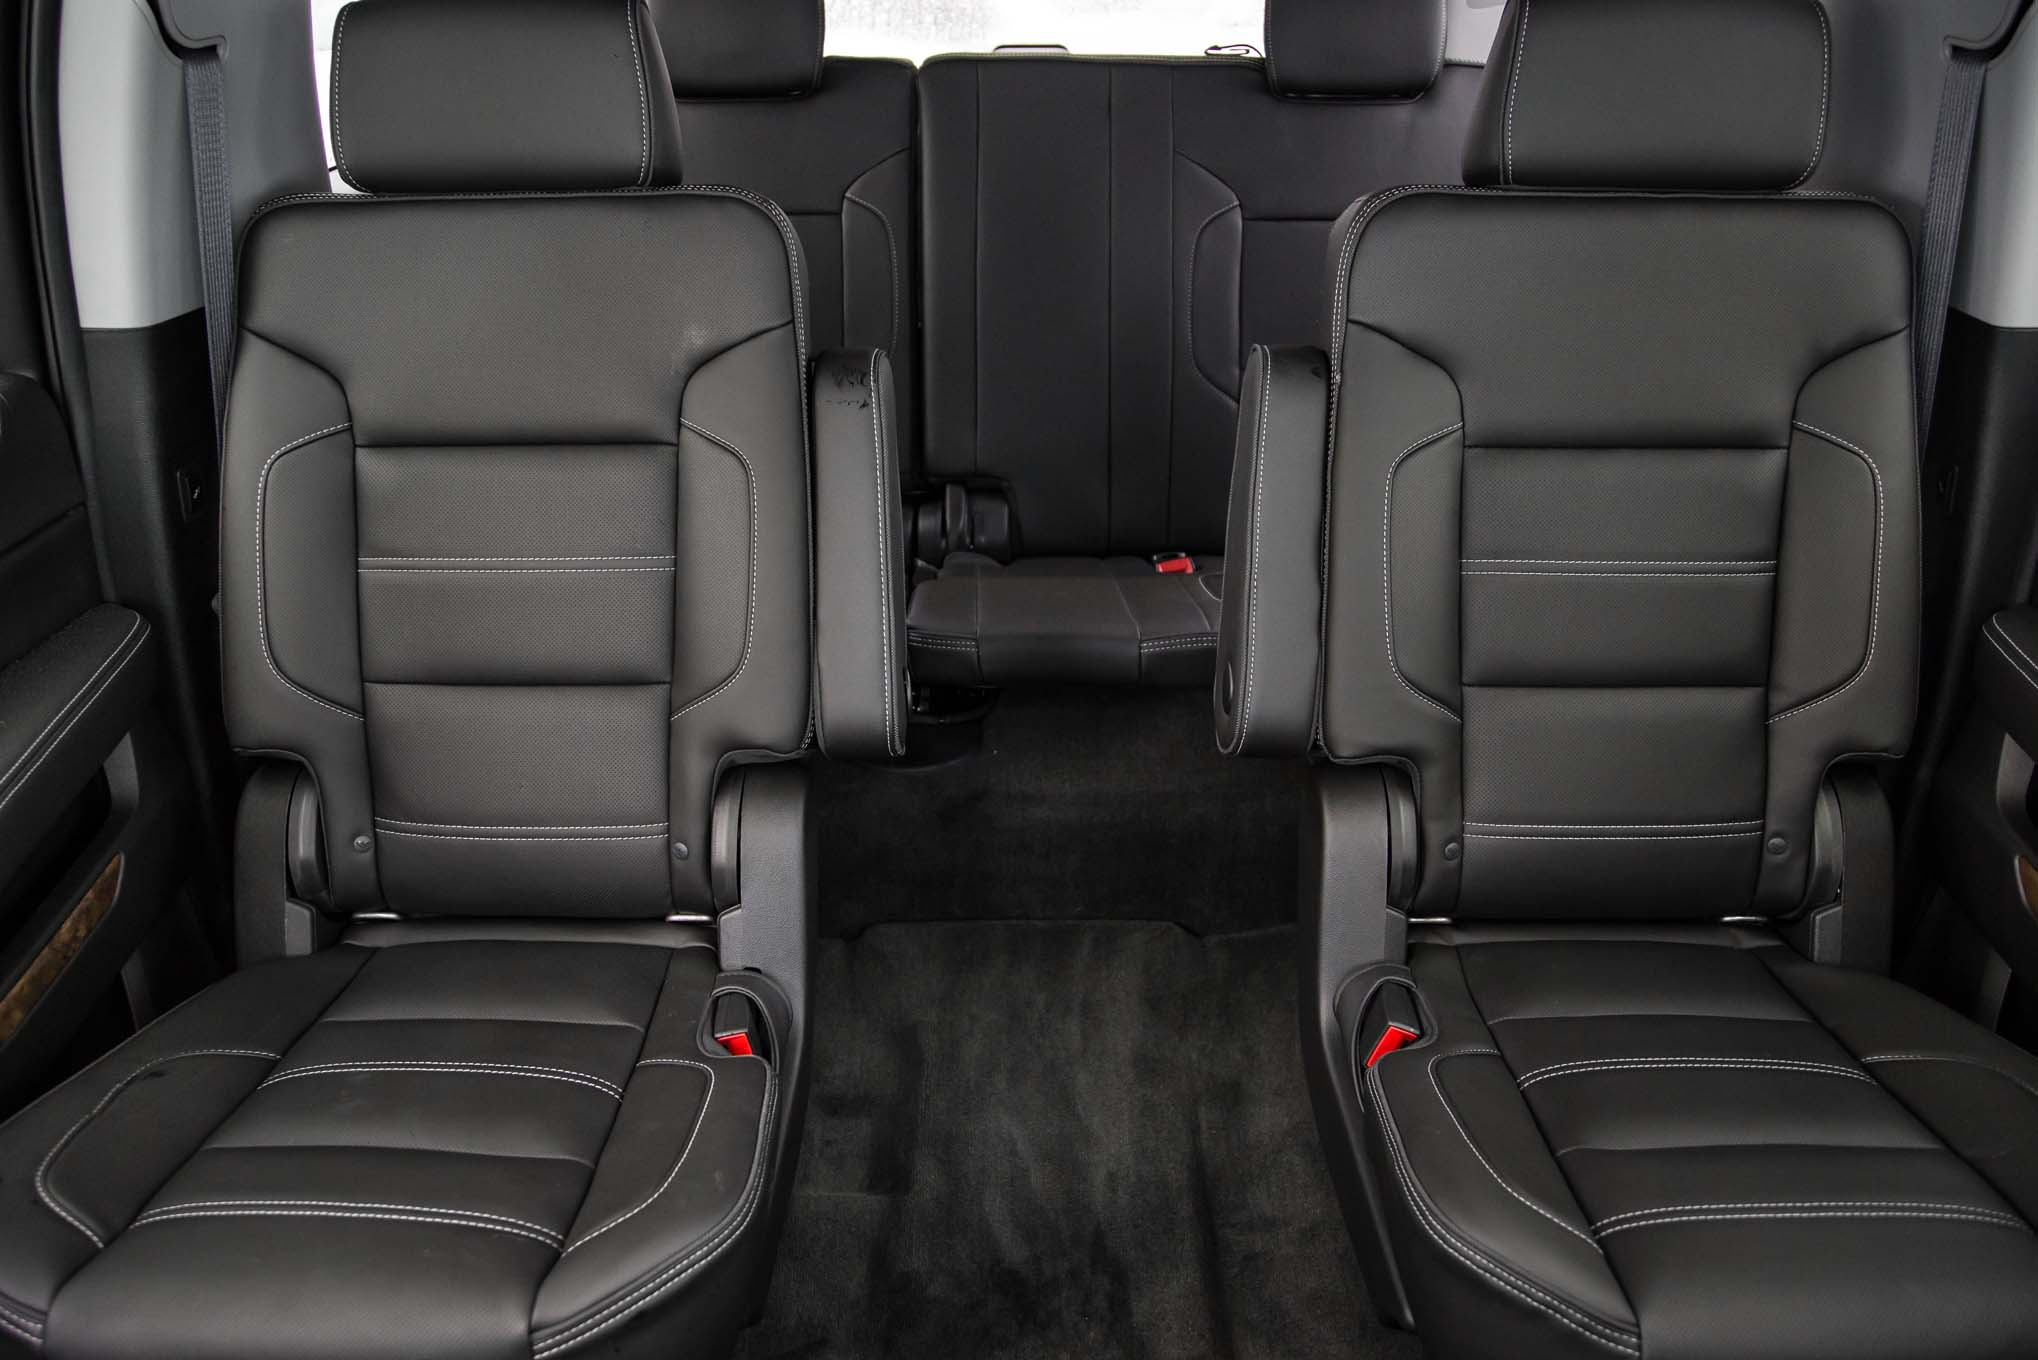 2015 Gmc Yukon Xl Center And Rear Seat Interior (Photo 1 of 10)